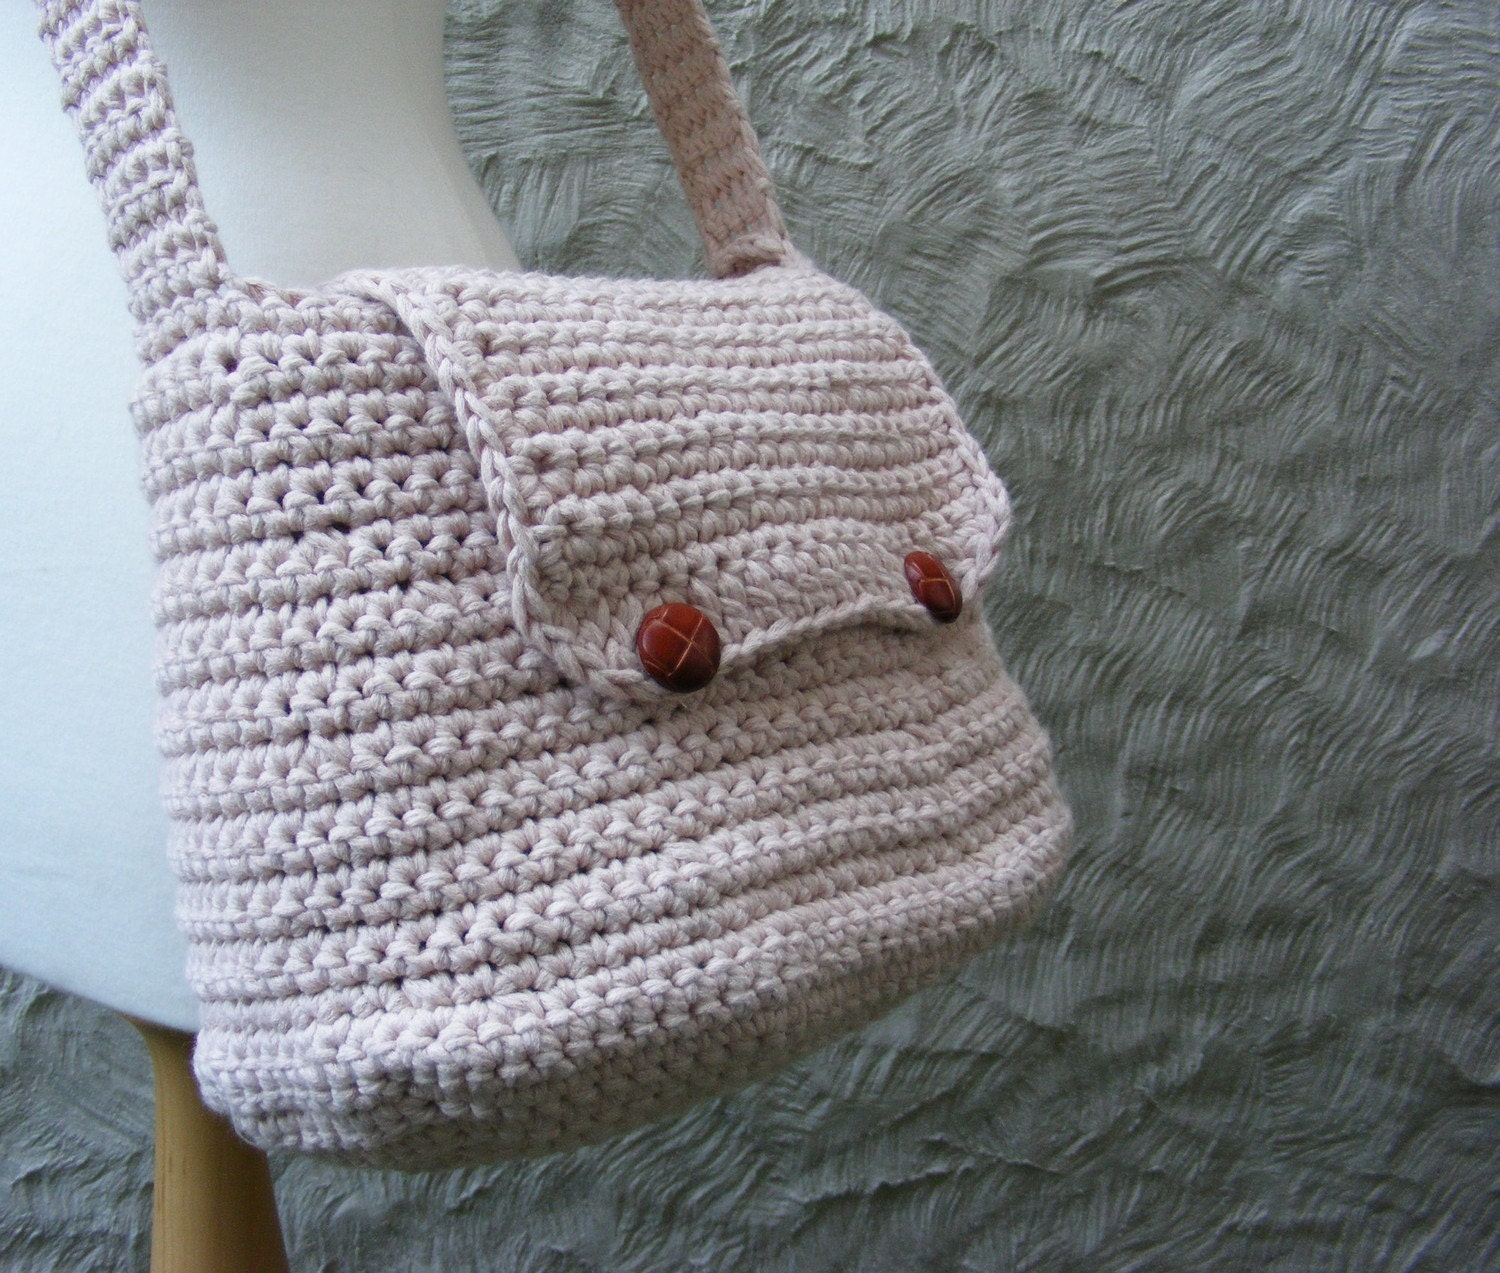 Crochet Bag And Pattern : CROCHETED HANDBAG PATTERNS Free Patterns